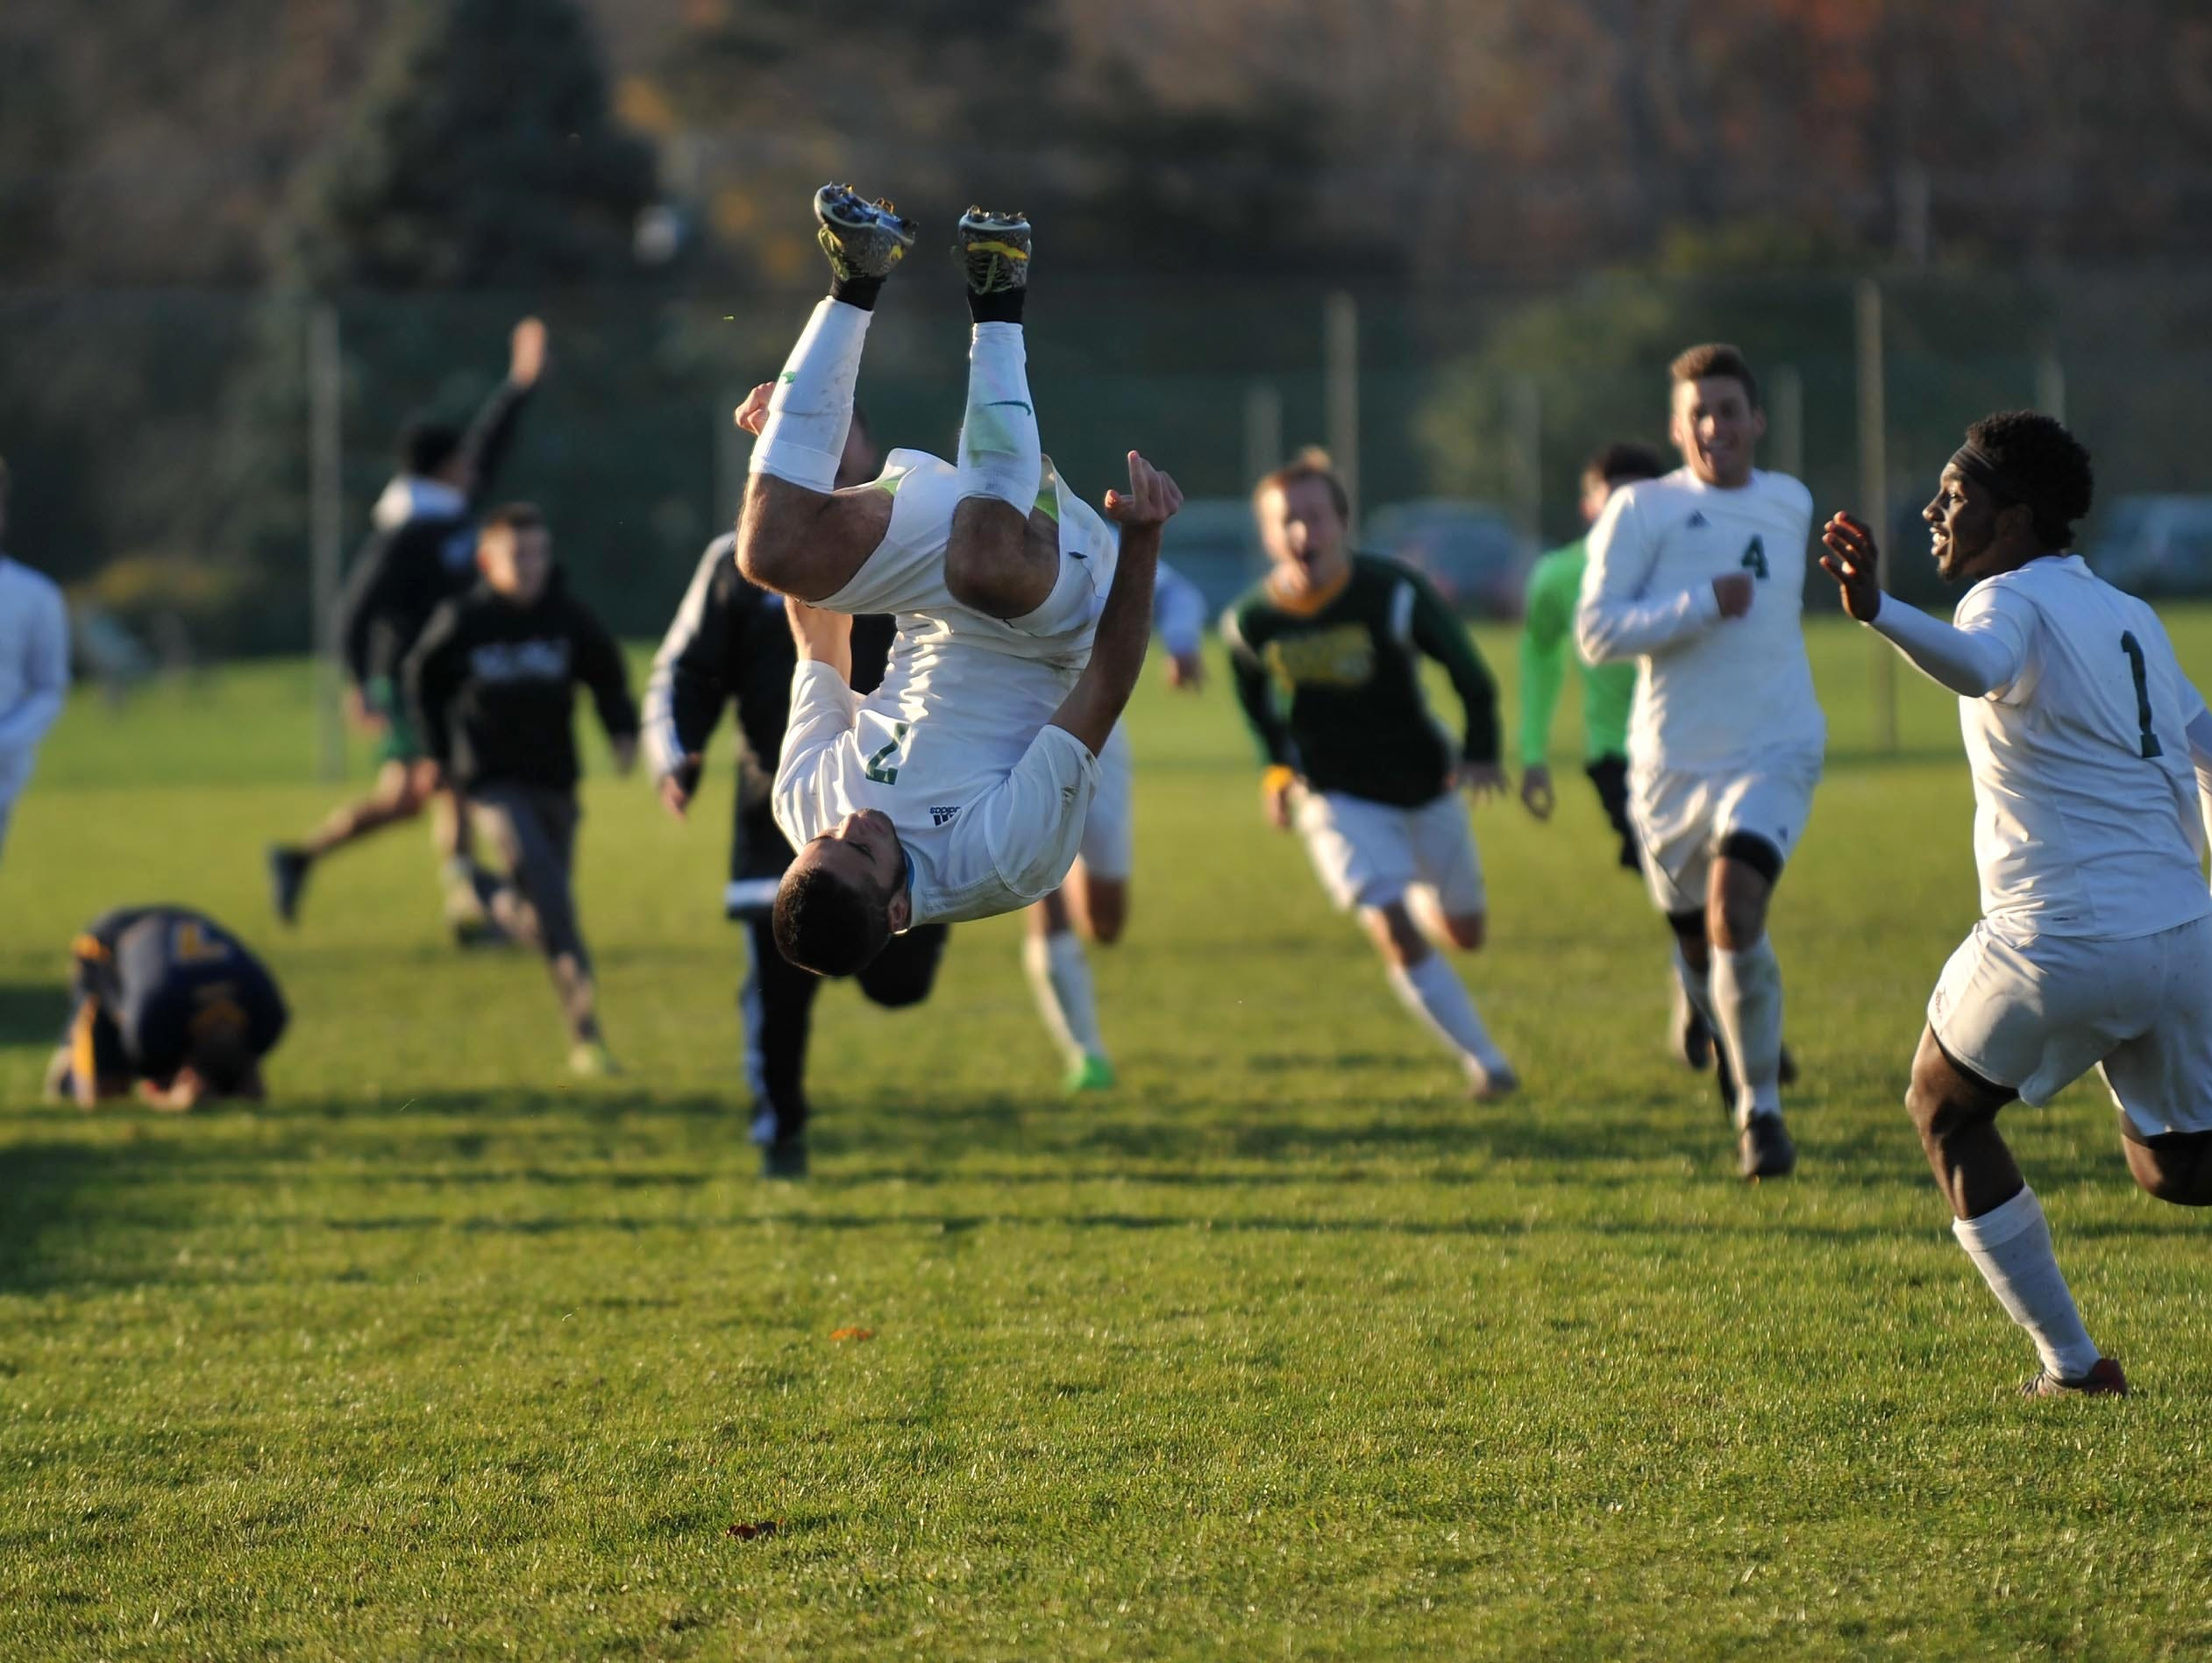 Schalick's Michael D'Orio (7) reacts with a front flip after scoring the winning goal over Lindenwold, in overtime, Friday, Nov. 13 in Pittsgrove.